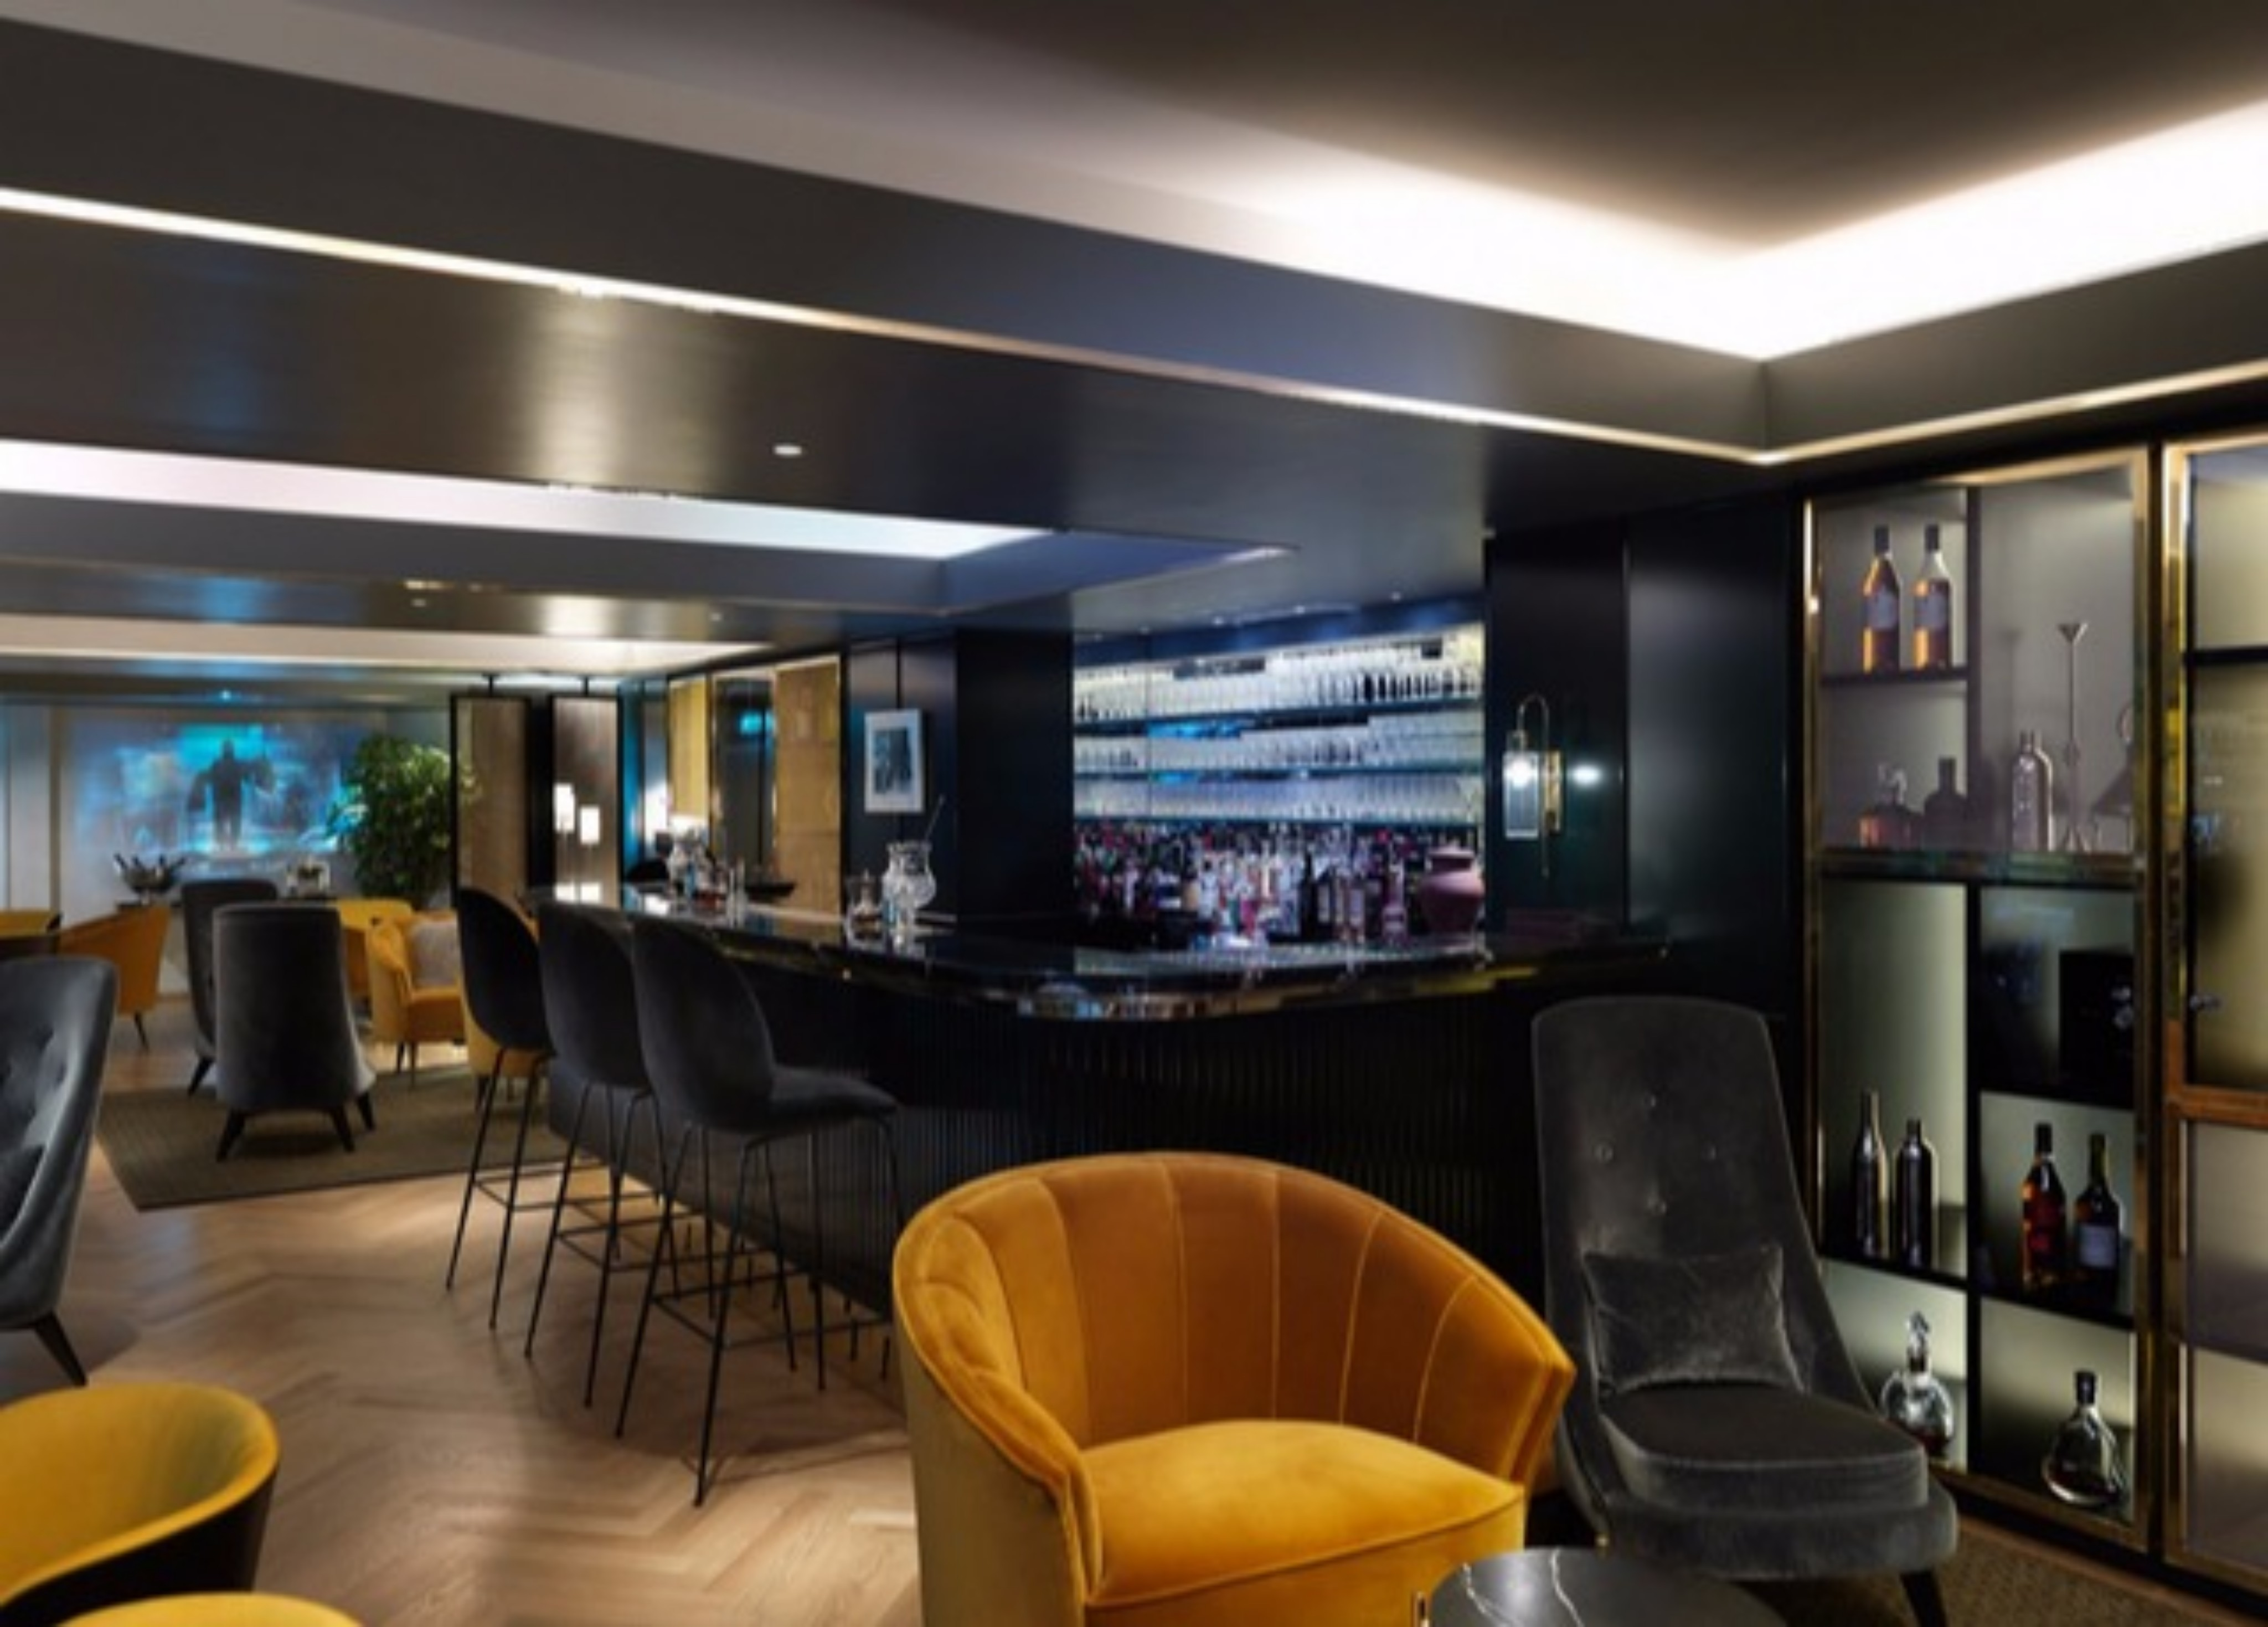 The Athenaeum shortlisted in the finalists at Restaurant and Bar Design Awards The Athenaeum shortlisted in the finalists at Restaurant and Bar Design AwardsThe Athenaeum shortlisted in the finalists at Restaurant and Bar Design Awards 12